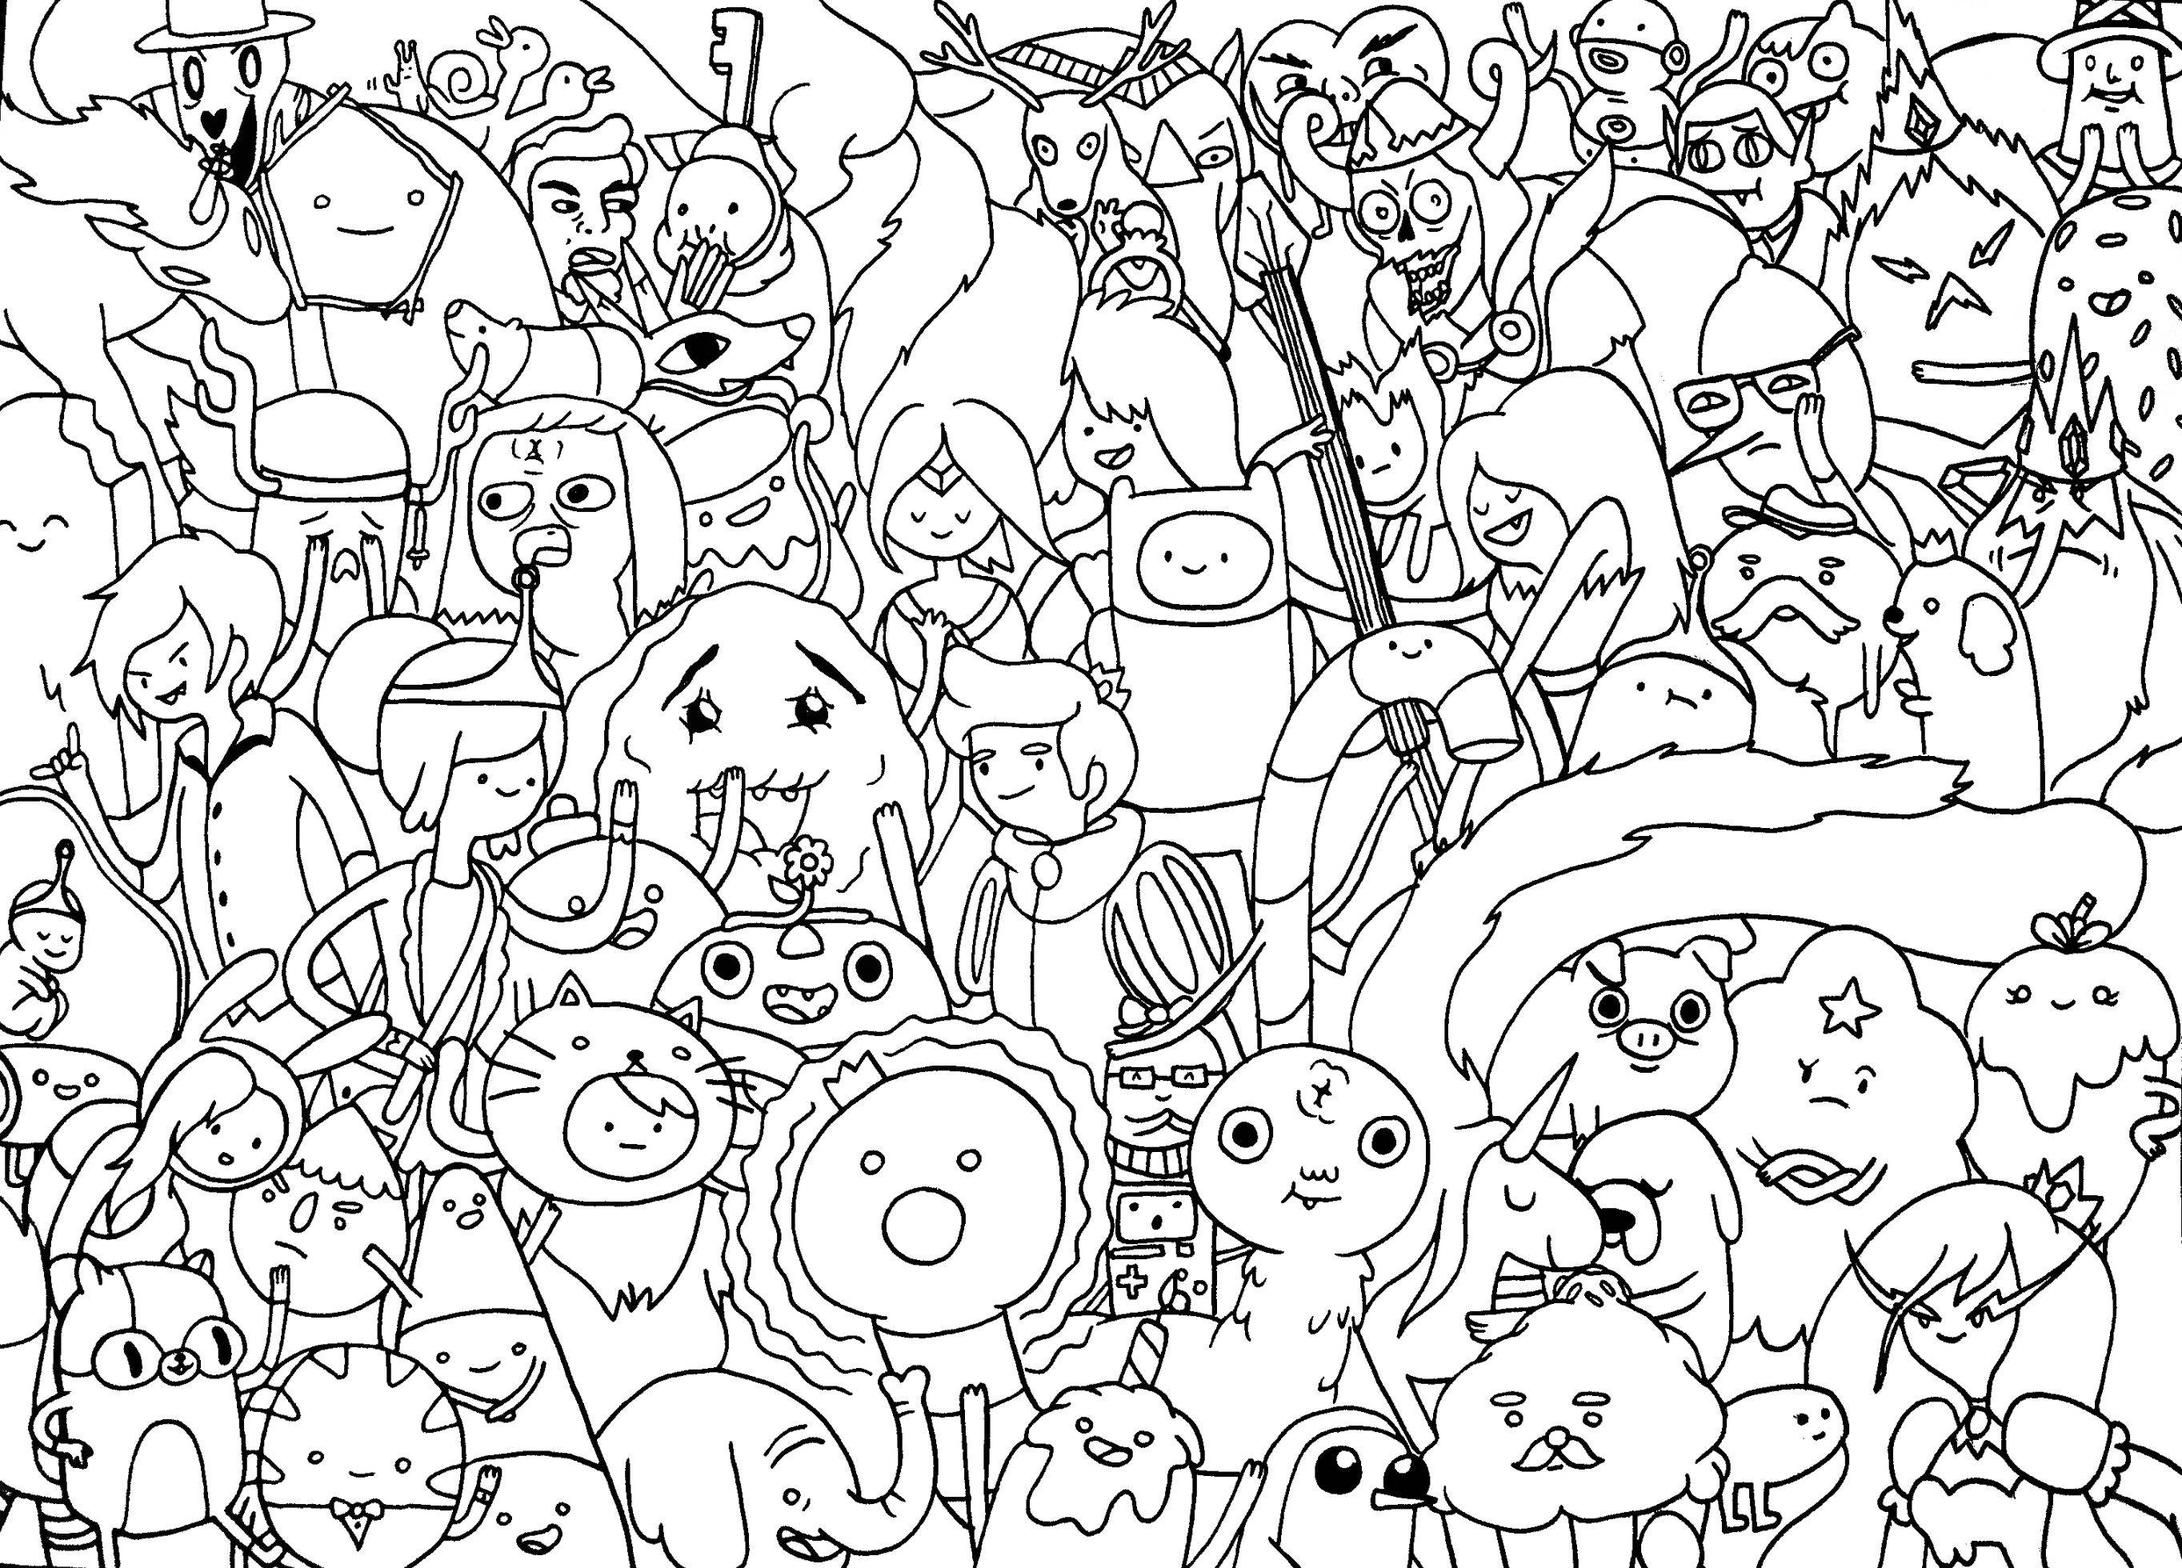 1000 ideas about adventure time coloring pages on pinterest